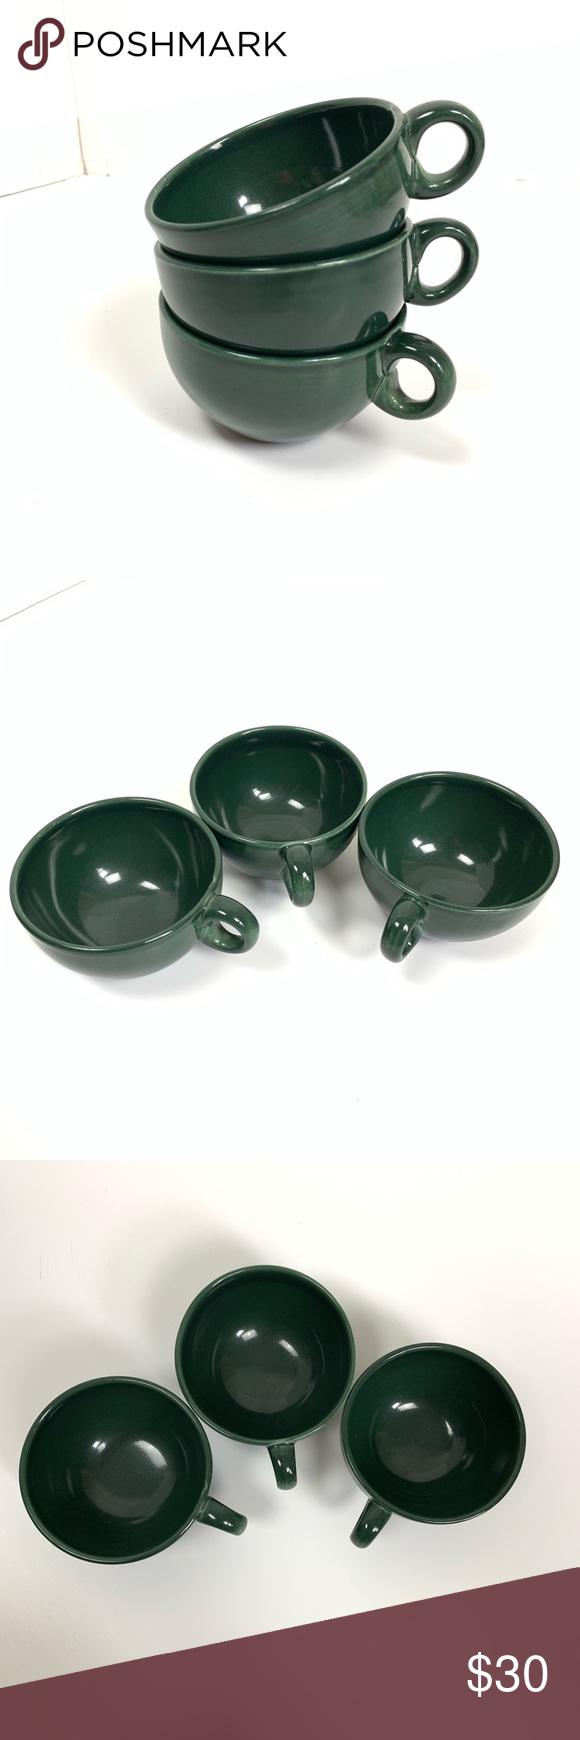 Iroquois Casual Russel Wright Dark Green Tea Cups Iroquois Casual China by Russel Wright Dark Green Japan Tea Cups Lot of 3 No cracks or chips Vintage Iroquois Casual Kitchen Coffee & Tea Accessories #darkgreenkitchen Iroquois Casual Russel Wright Dark Green Tea Cups Iroquois Casual China by Russel Wright Dark Green Japan Tea Cups Lot of 3 No cracks or chips Vintage Iroquois Casual Kitchen Coffee & Tea Accessories #darkgreenkitchen Iroquois Casual Russel Wright Dark Green Tea Cups Iroquois Casua #darkgreenkitchen